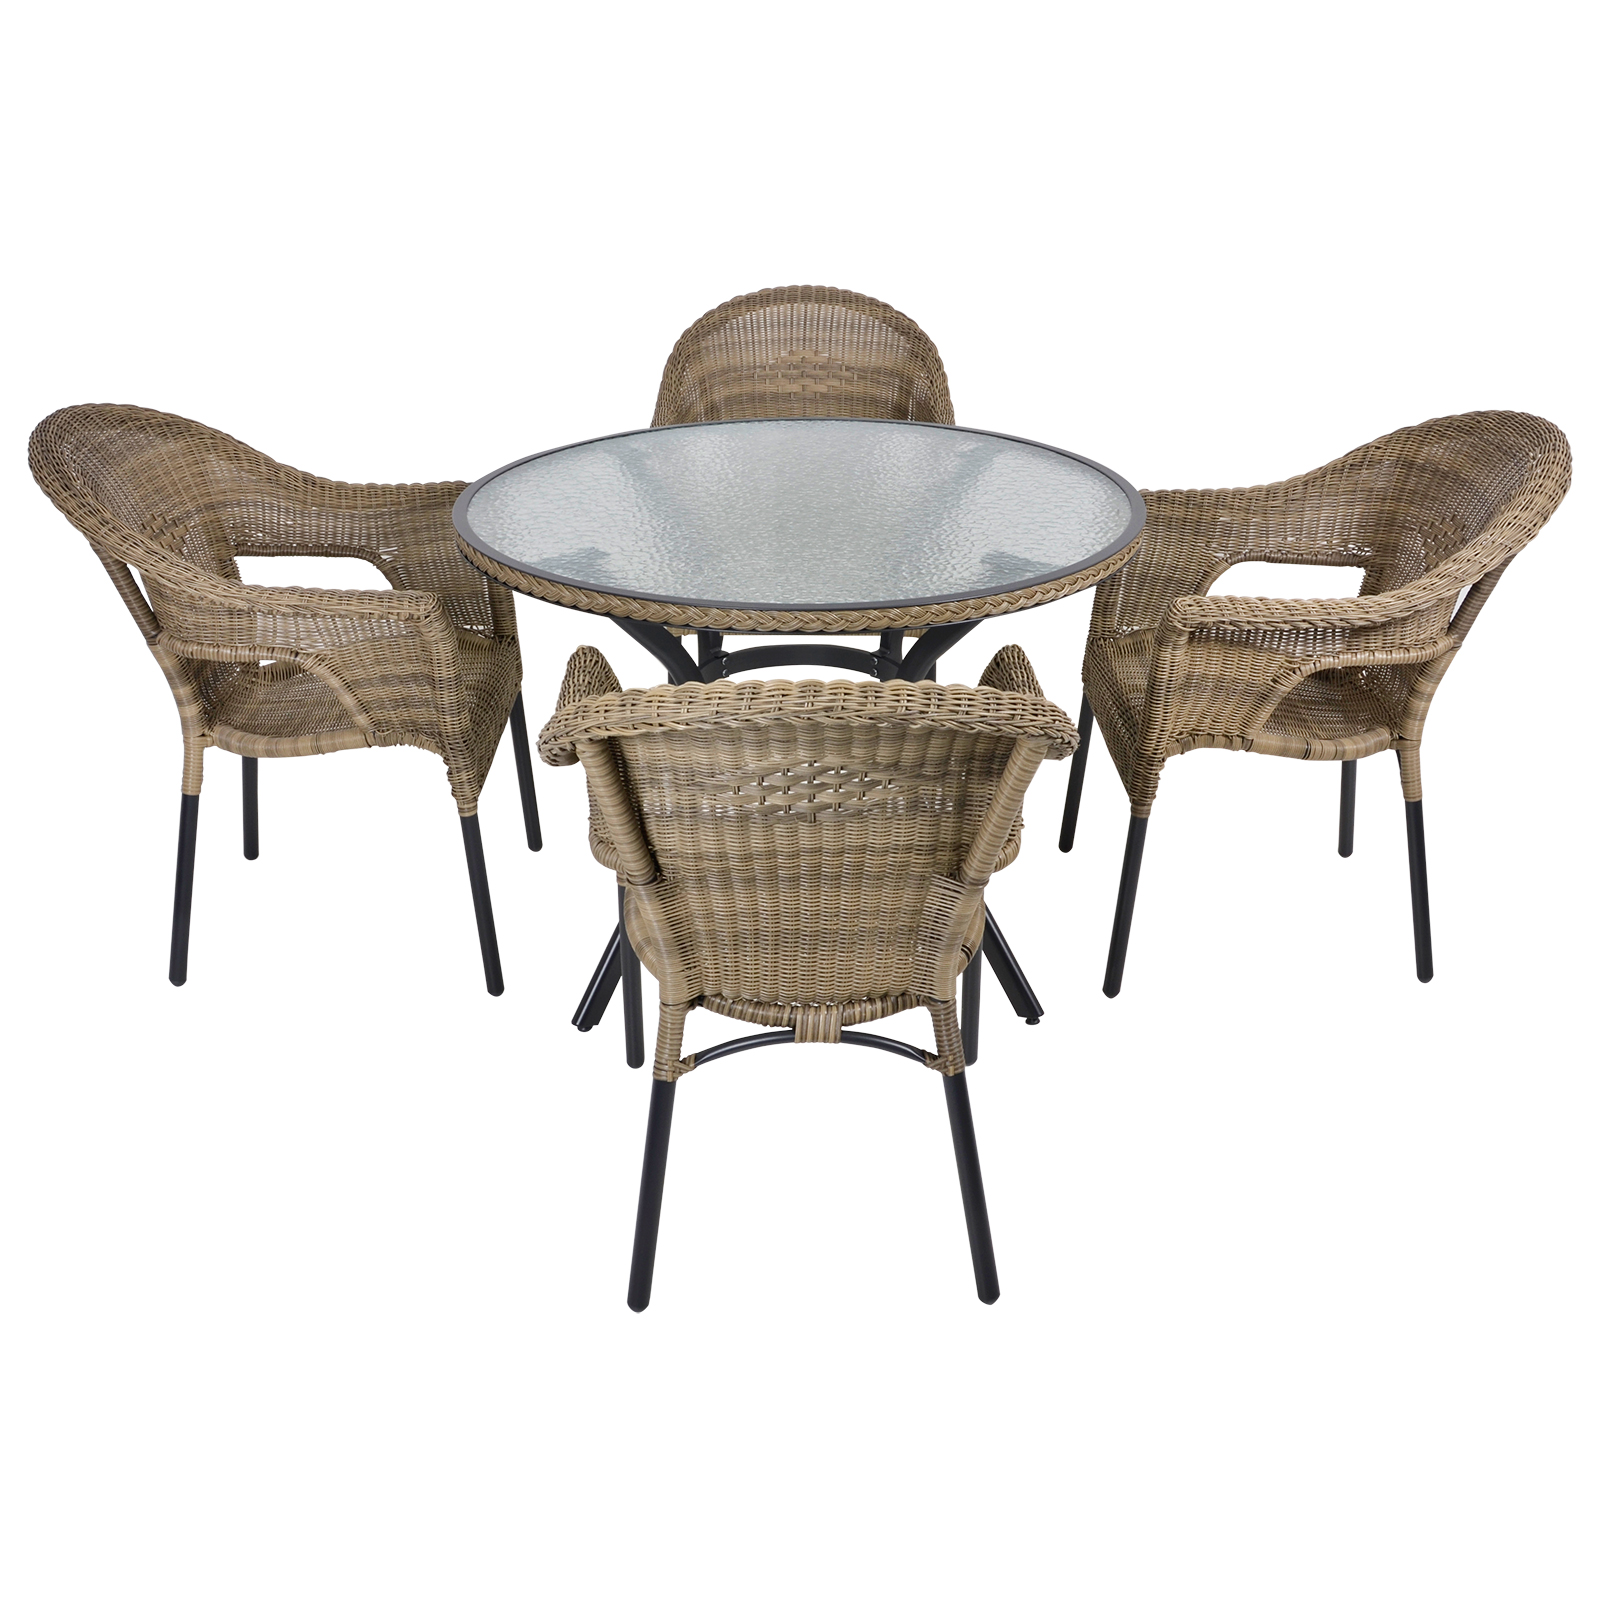 havana rattan wicker dining 4 seat garden patio furniture. Black Bedroom Furniture Sets. Home Design Ideas